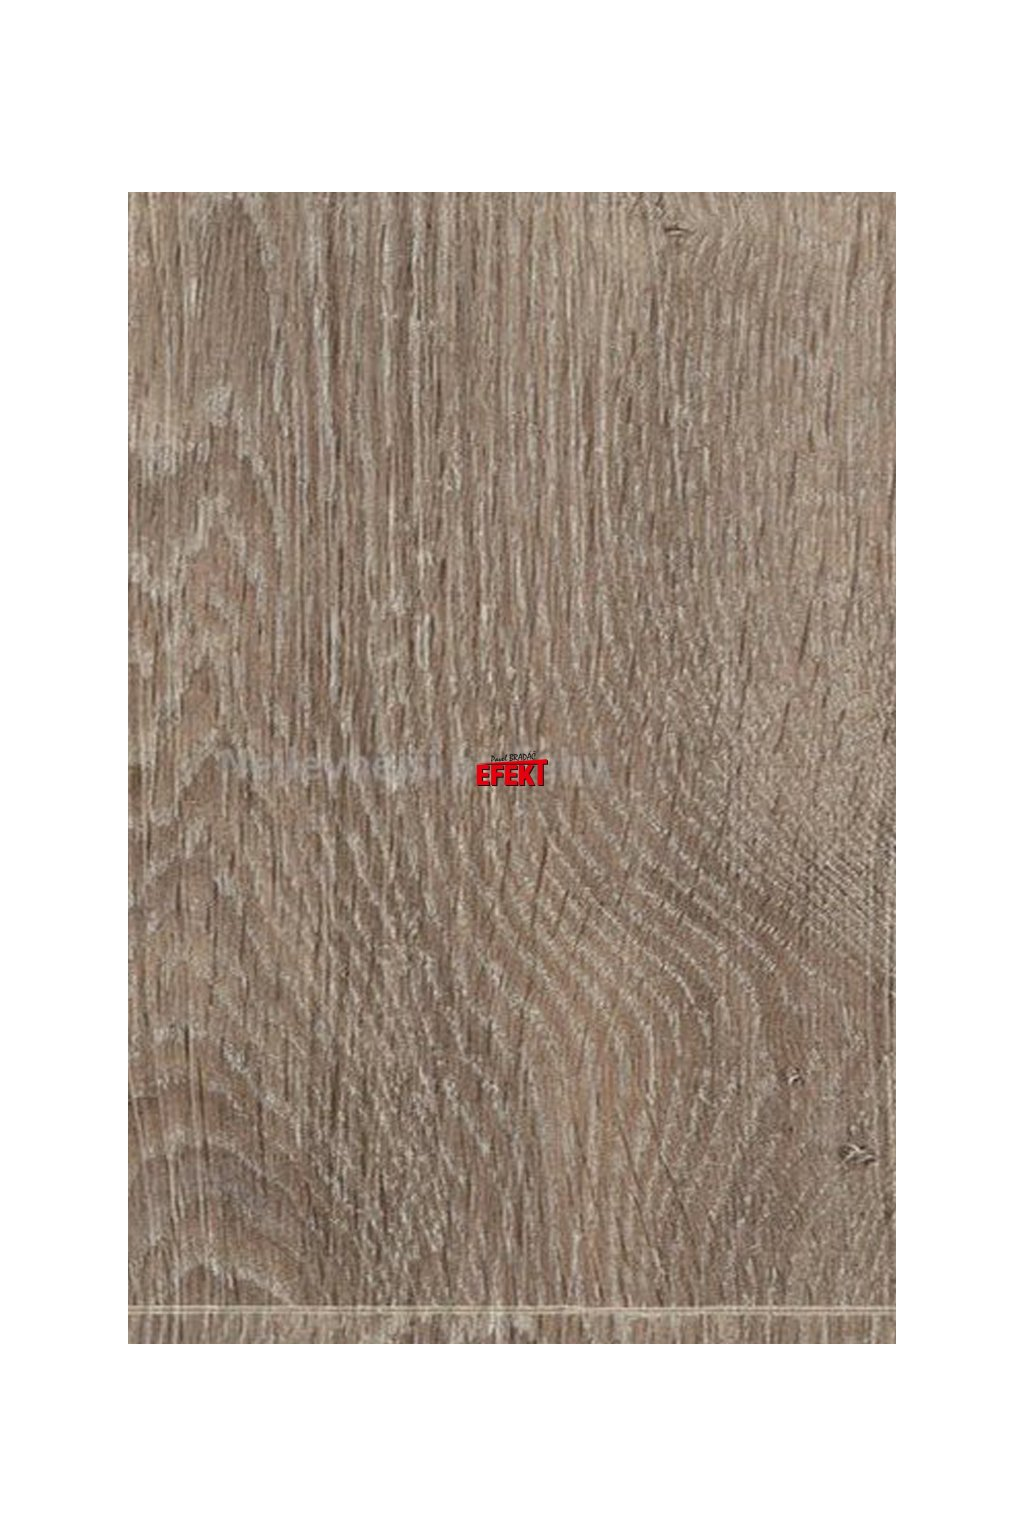 Whitewashed Oak Warm Grey 0542